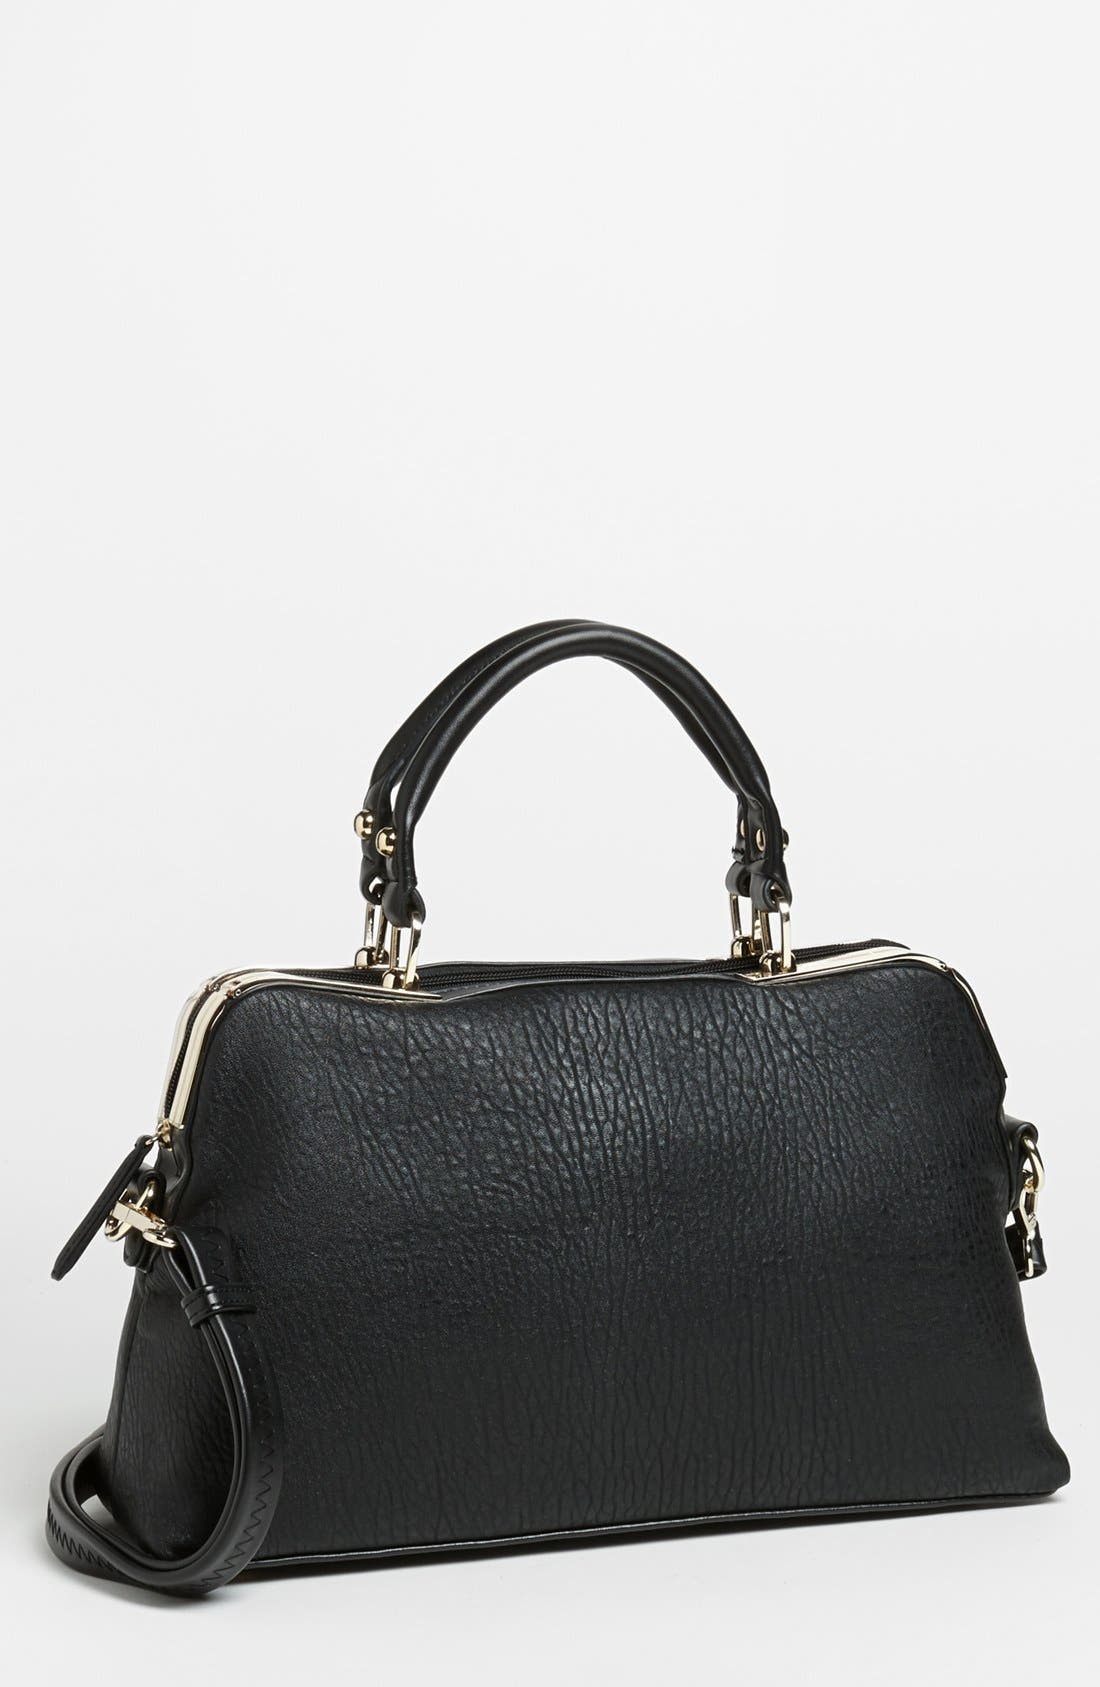 Alternate Image 1 Selected - Emperia Faux Leather Tote Bag